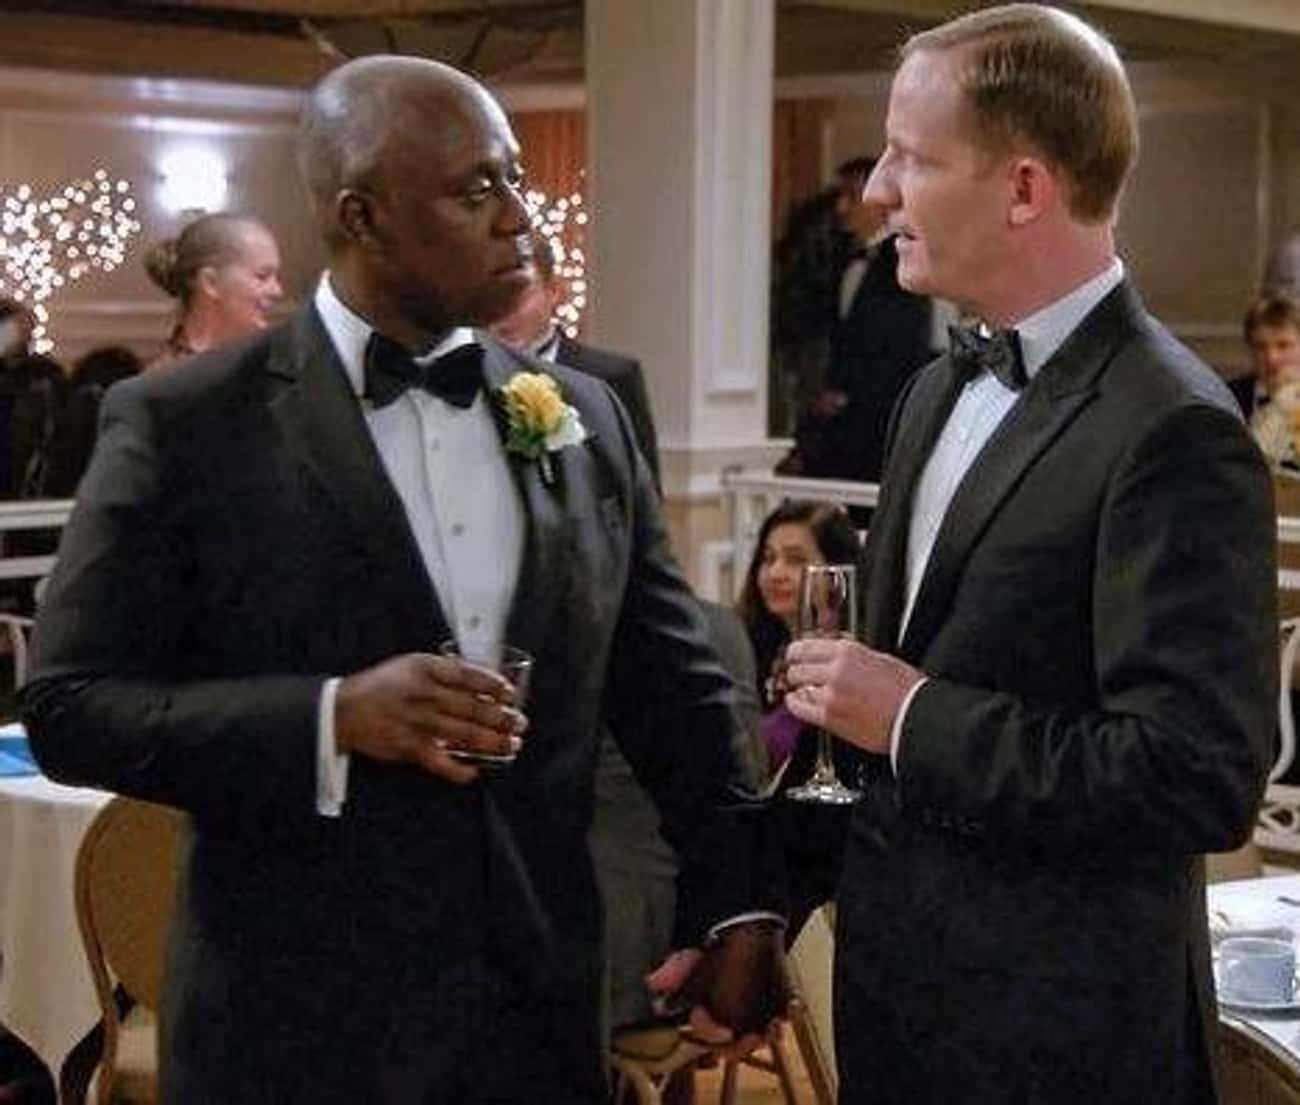 Ray & Kevin is listed (or ranked) 3 on the list The 50+ Best LGBTQ+ Couples In TV History